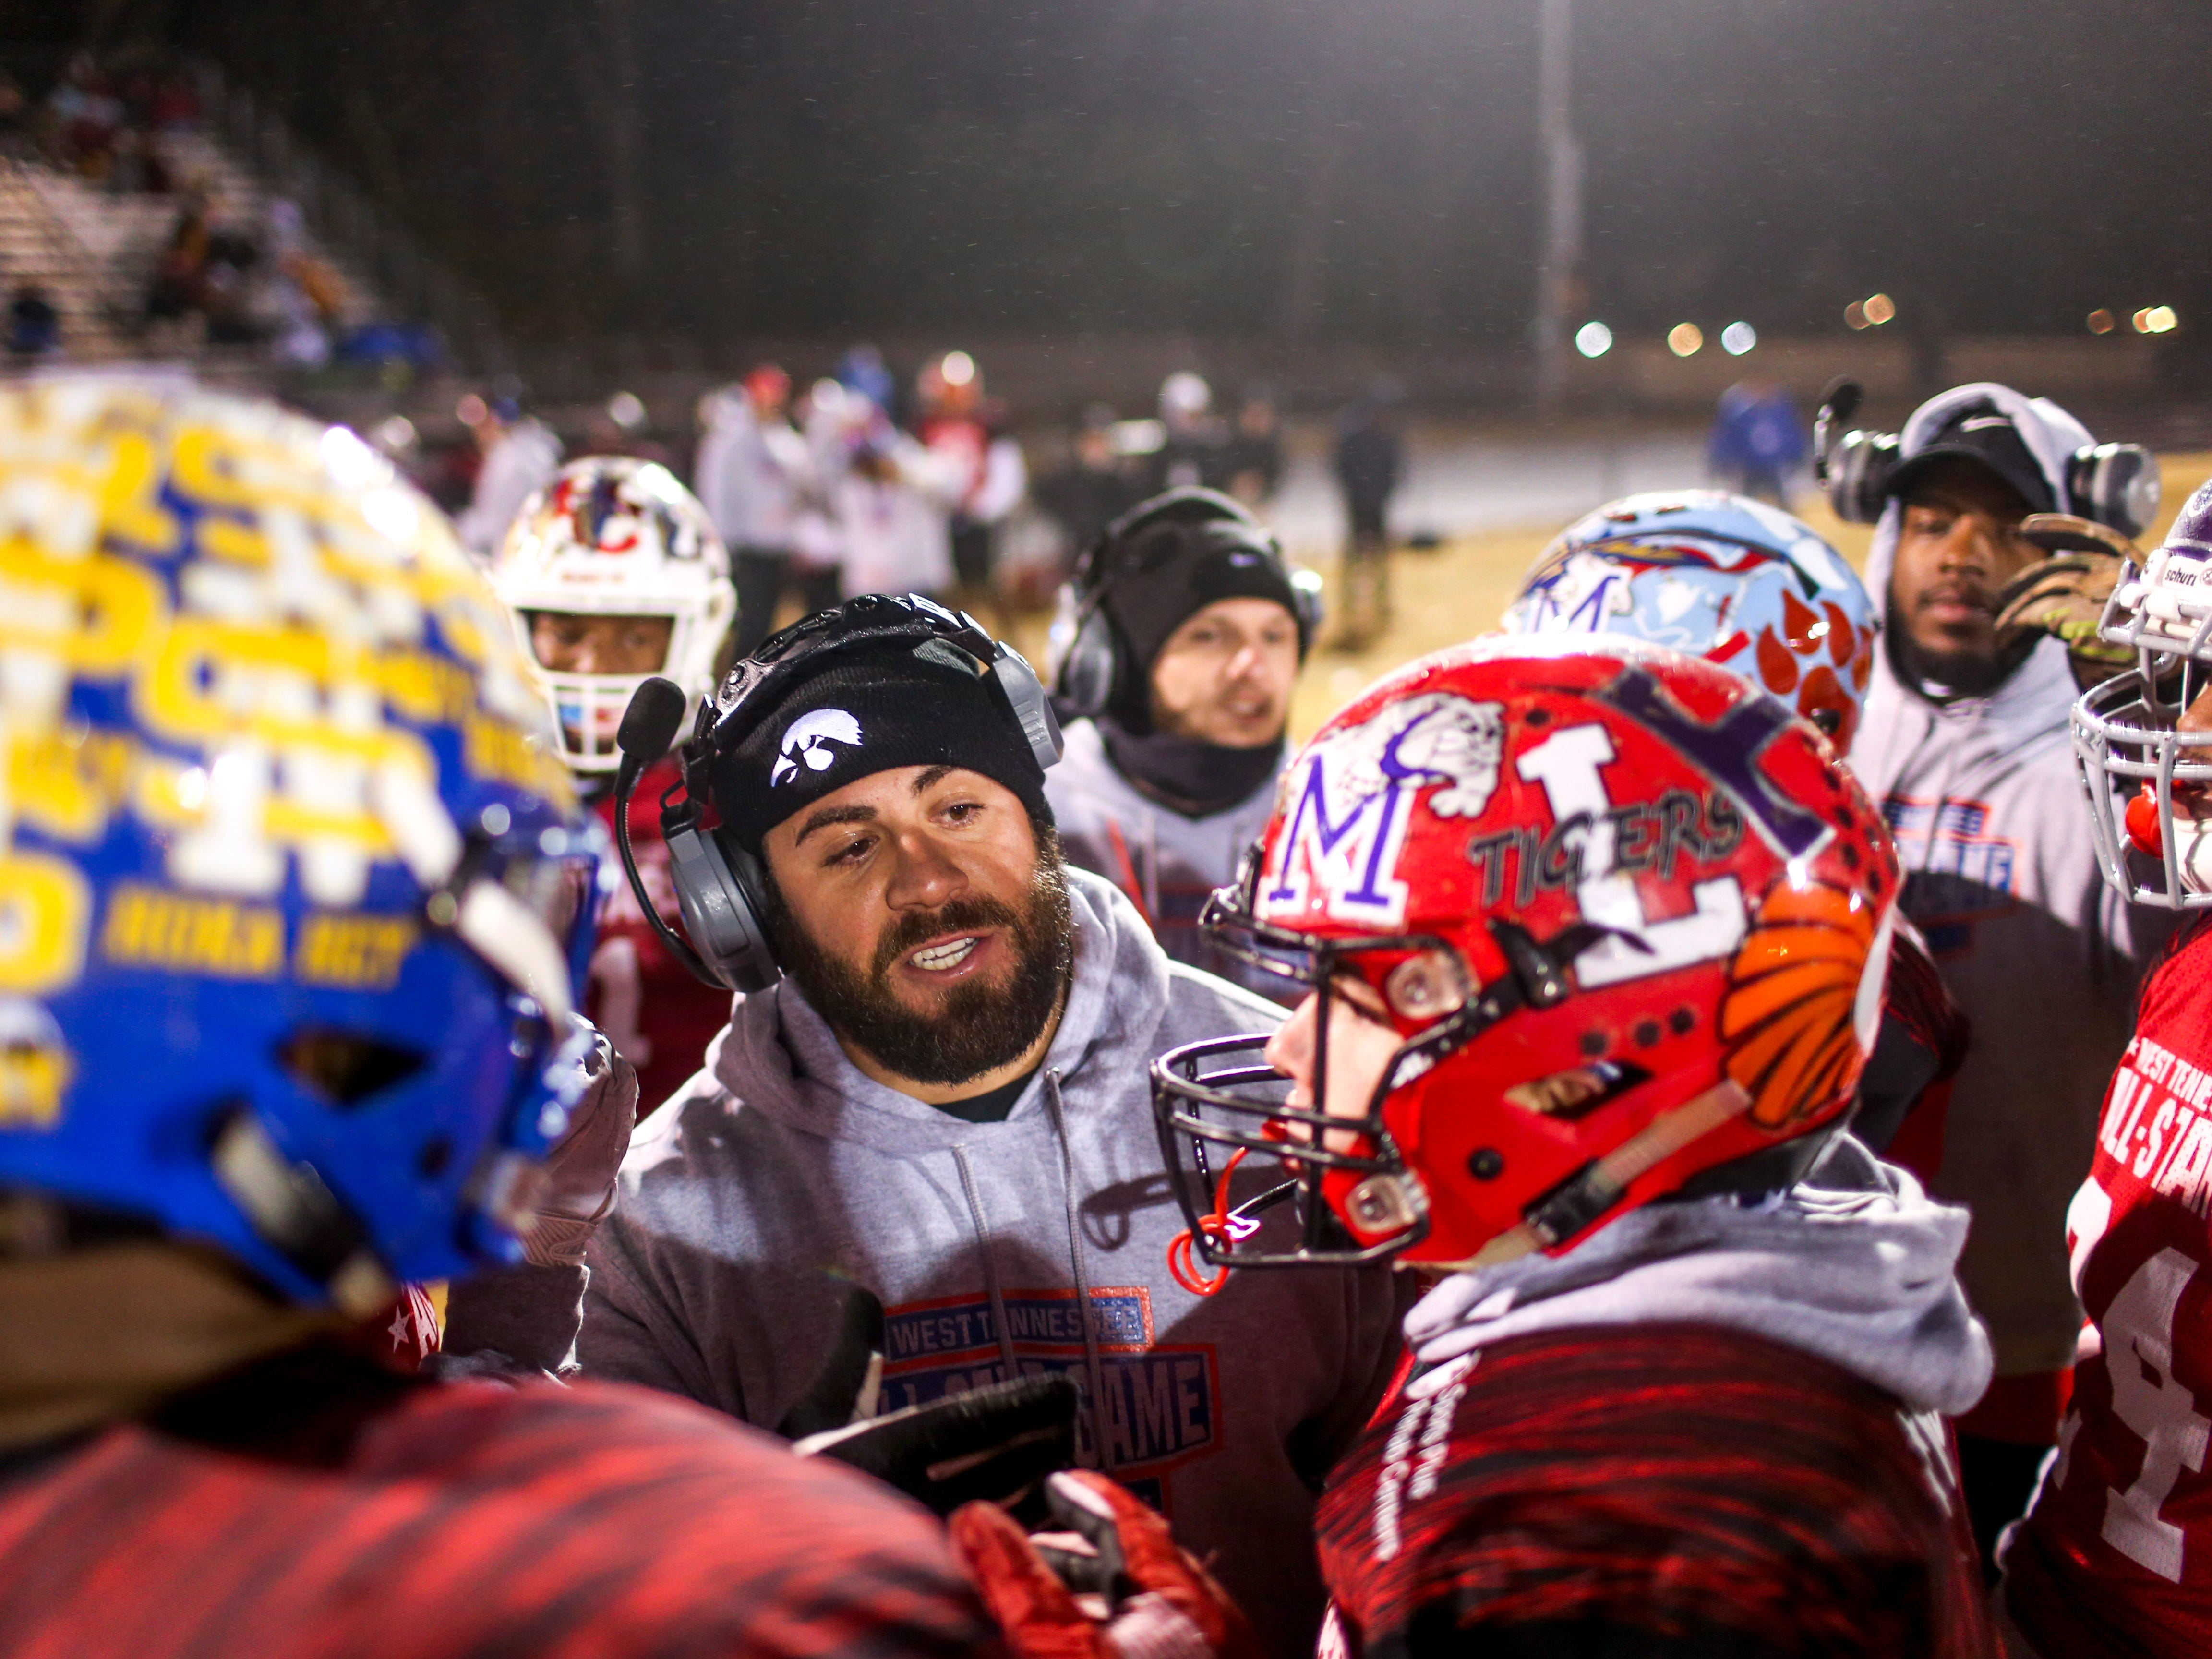 South Side head coach Tyler Reeder speaks to his team during the West Tennessee All-Star football game at University School of Jackson in Jackson, Tenn., on Friday, Dec. 7, 2018.